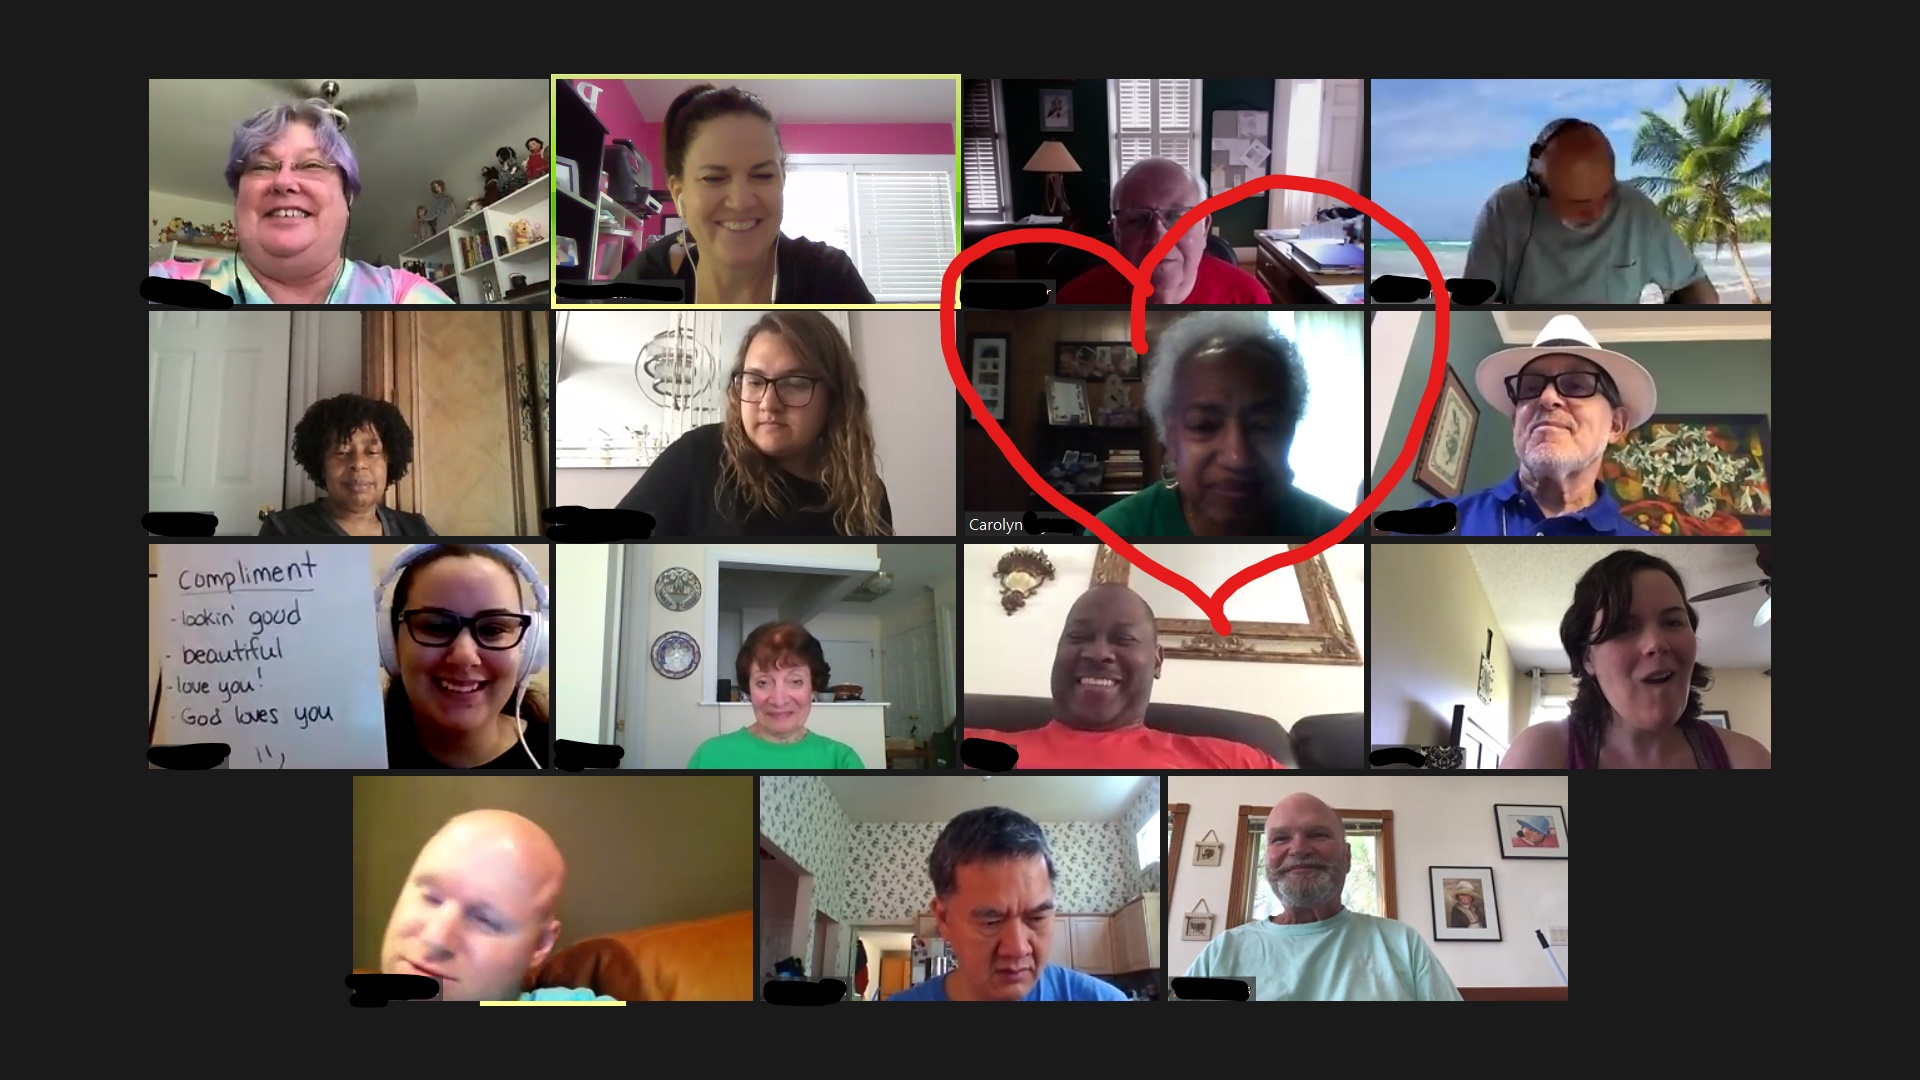 15 participants in a Zoom meeting with one person circled with a red heart shape